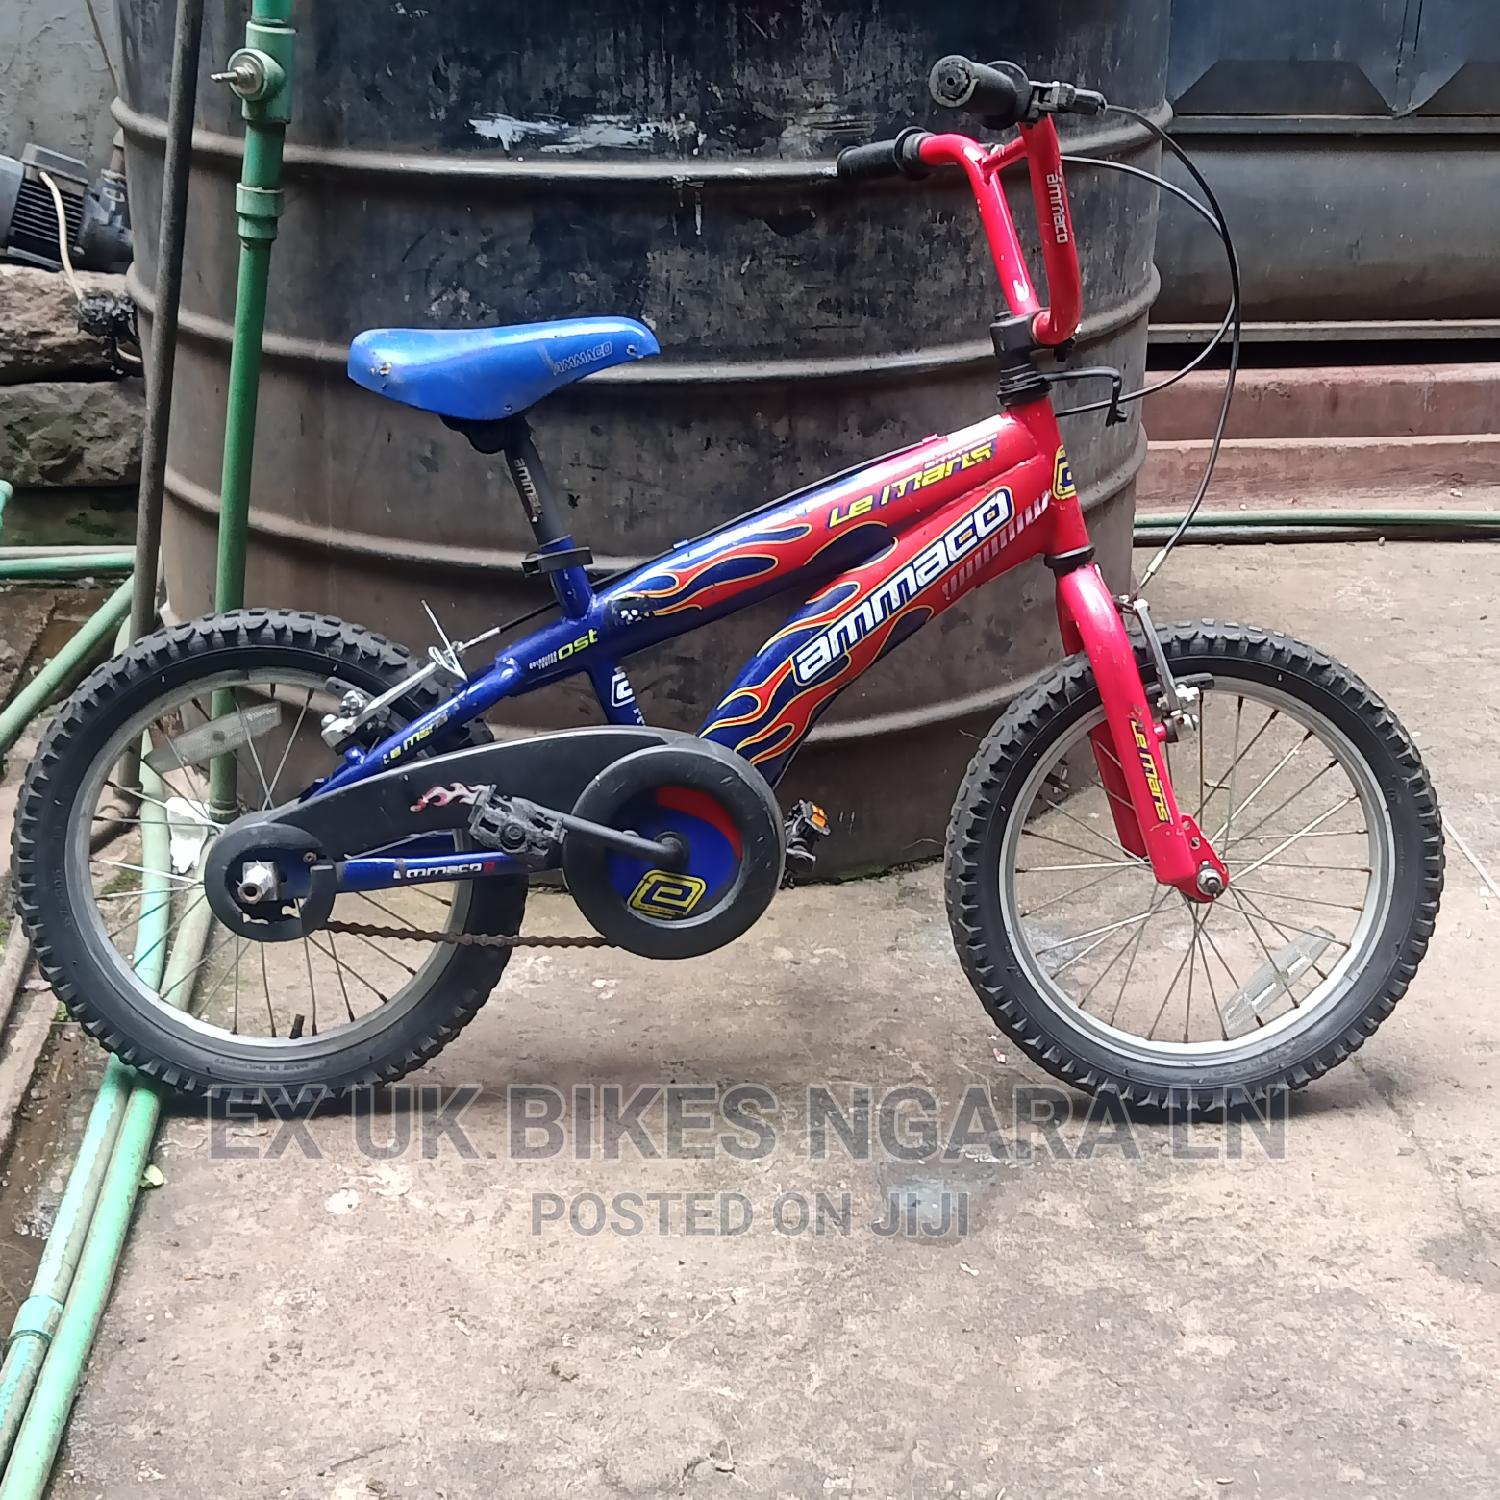 Ex UK Size 16 Bicycle for 4_5 Yr Old